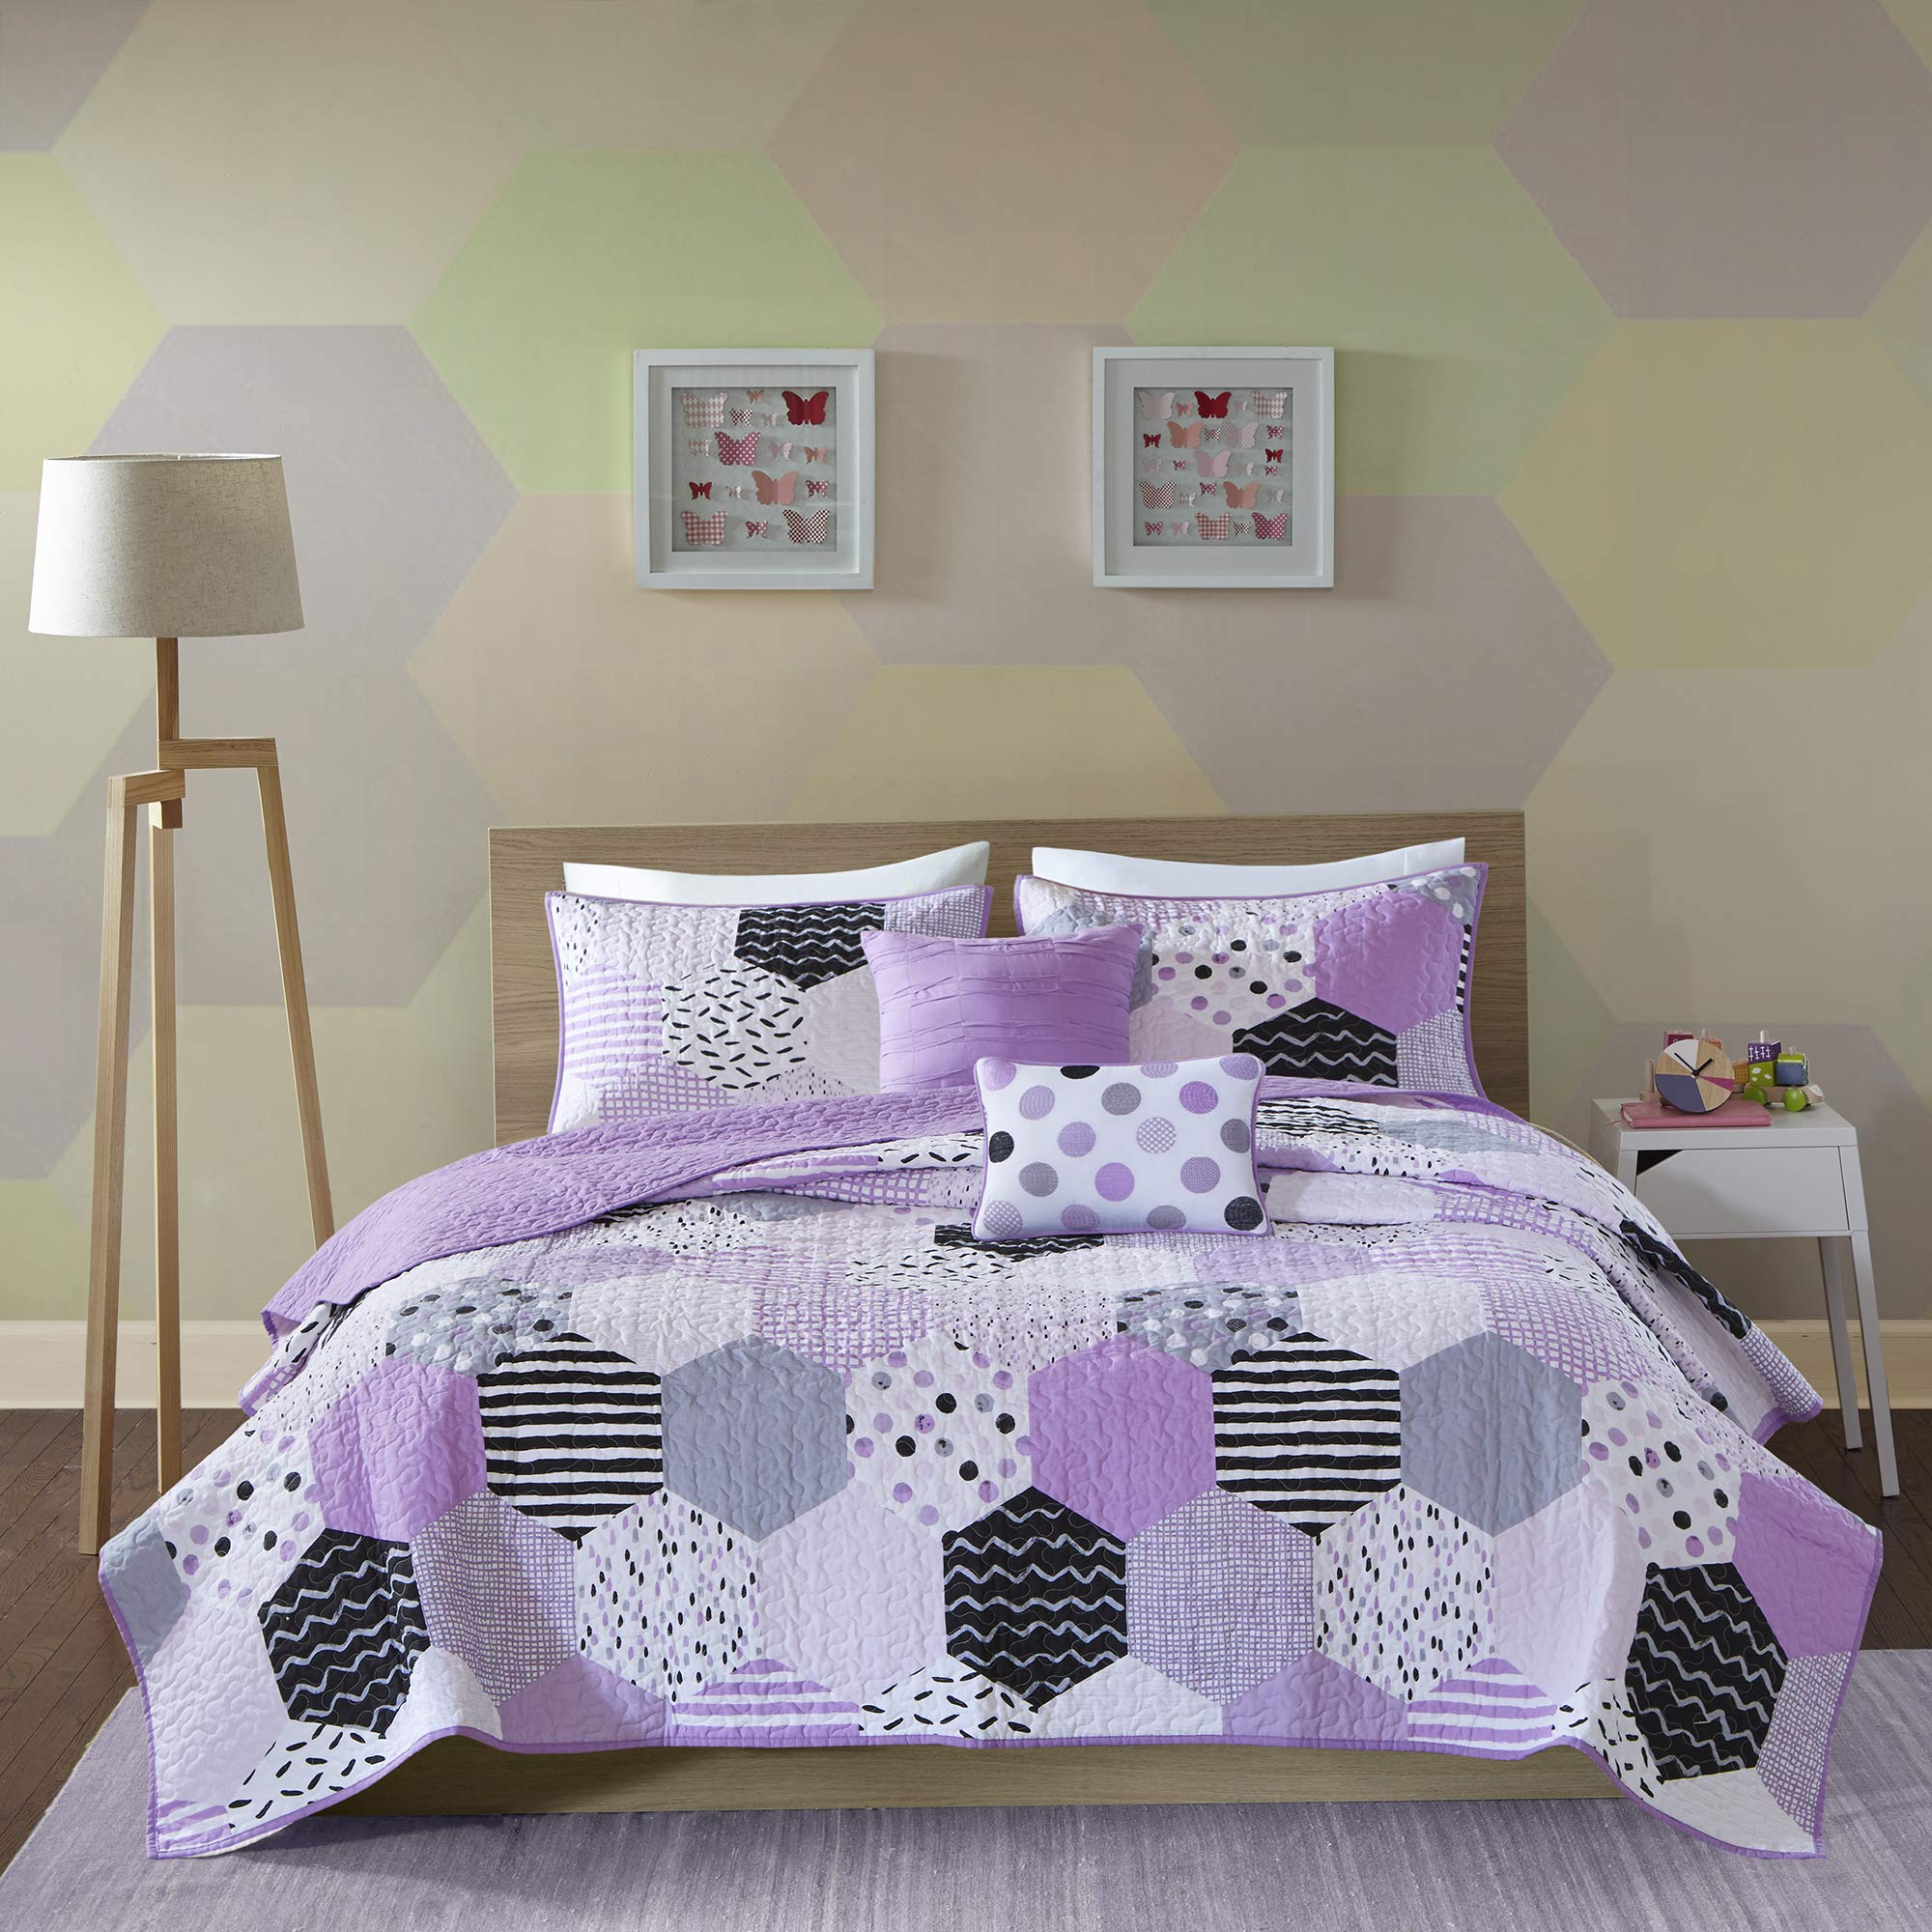 Urban Habitat Kids Trixie Full/Queen Bedding for Girls Quilt Set - Purple, Geometric - 5 Piece Kids Girls Quilts - Cotton Quilt Sets Coverlet by Urban Habitat Kids